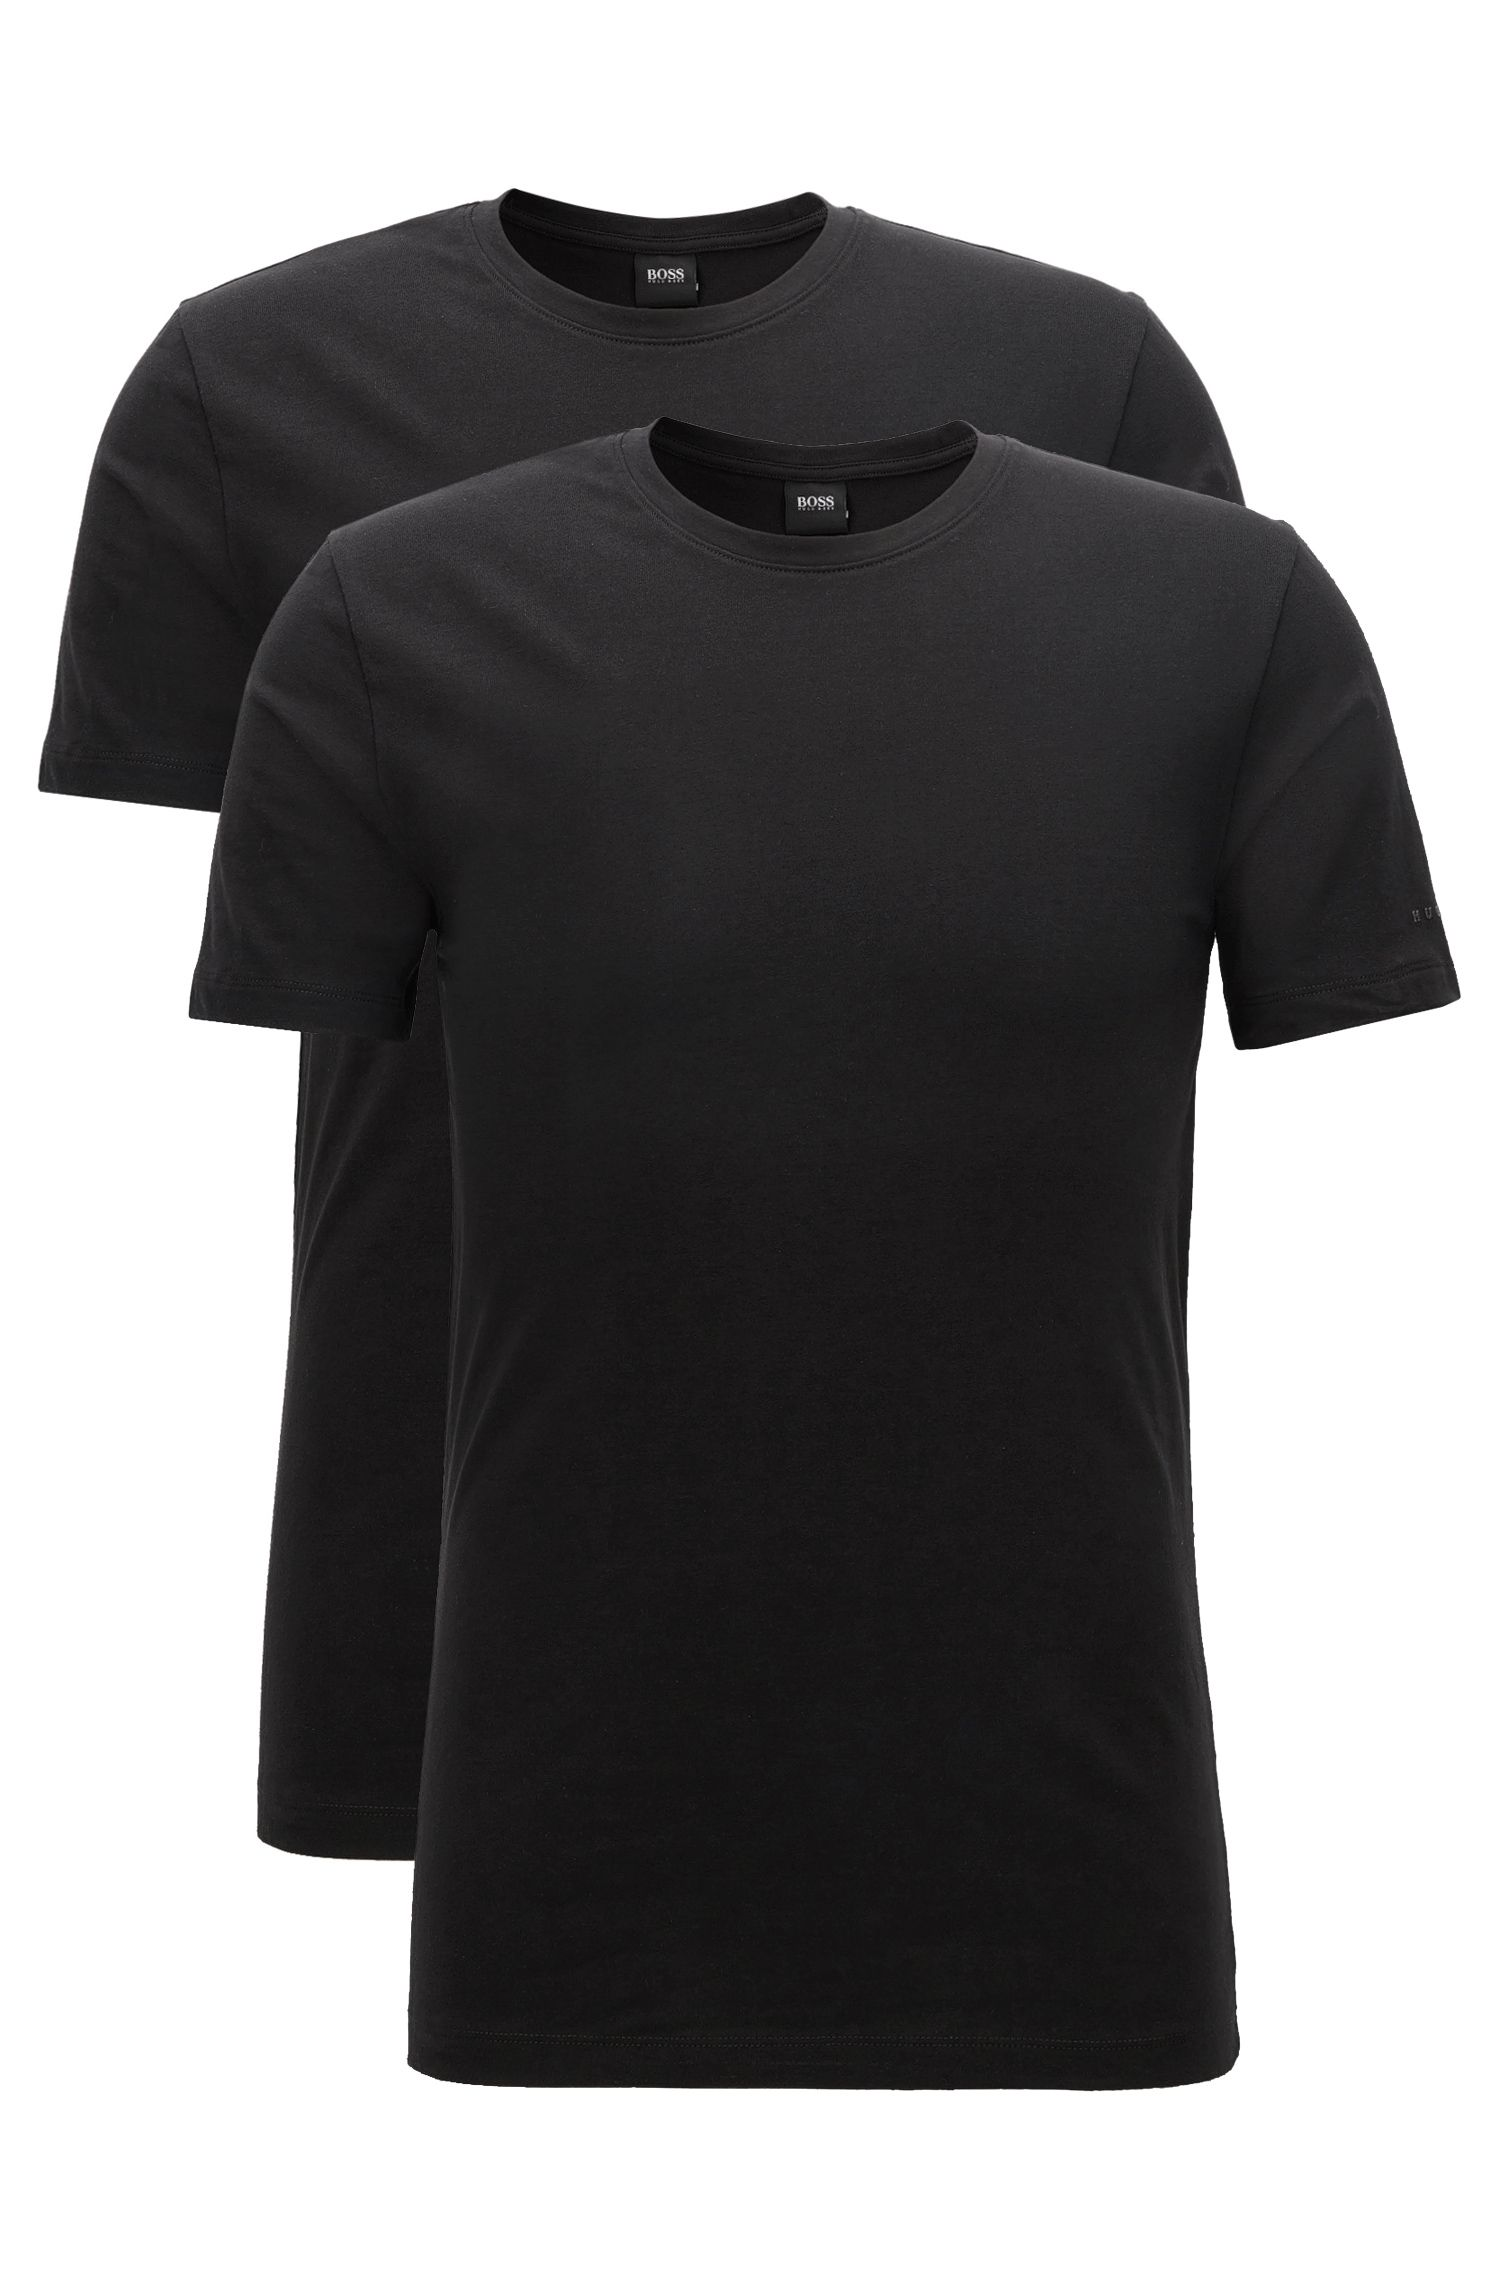 Two-pack regular-fit crew-neck T-shirts in stretch cotton jersey